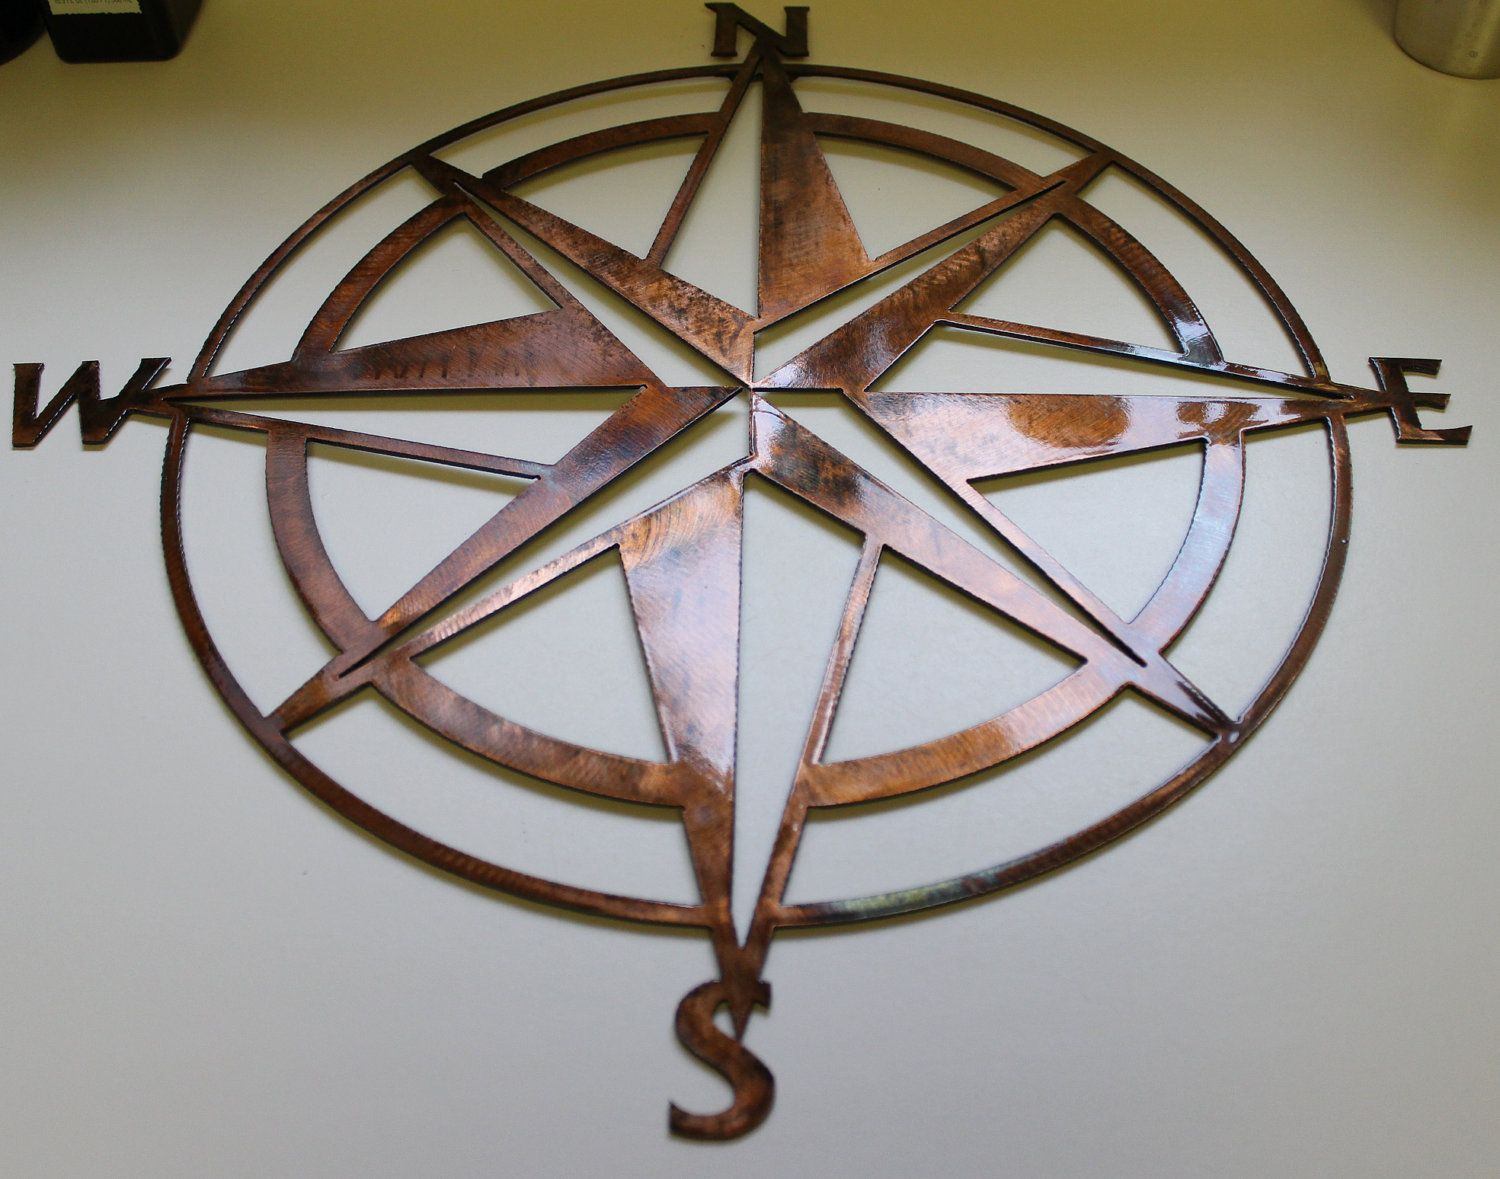 Nautical compass rose wall art metal decor by heavensgatemetalwork nautical compass rose wall art metal decor by heavensgatemetalwork 7499 amipublicfo Gallery